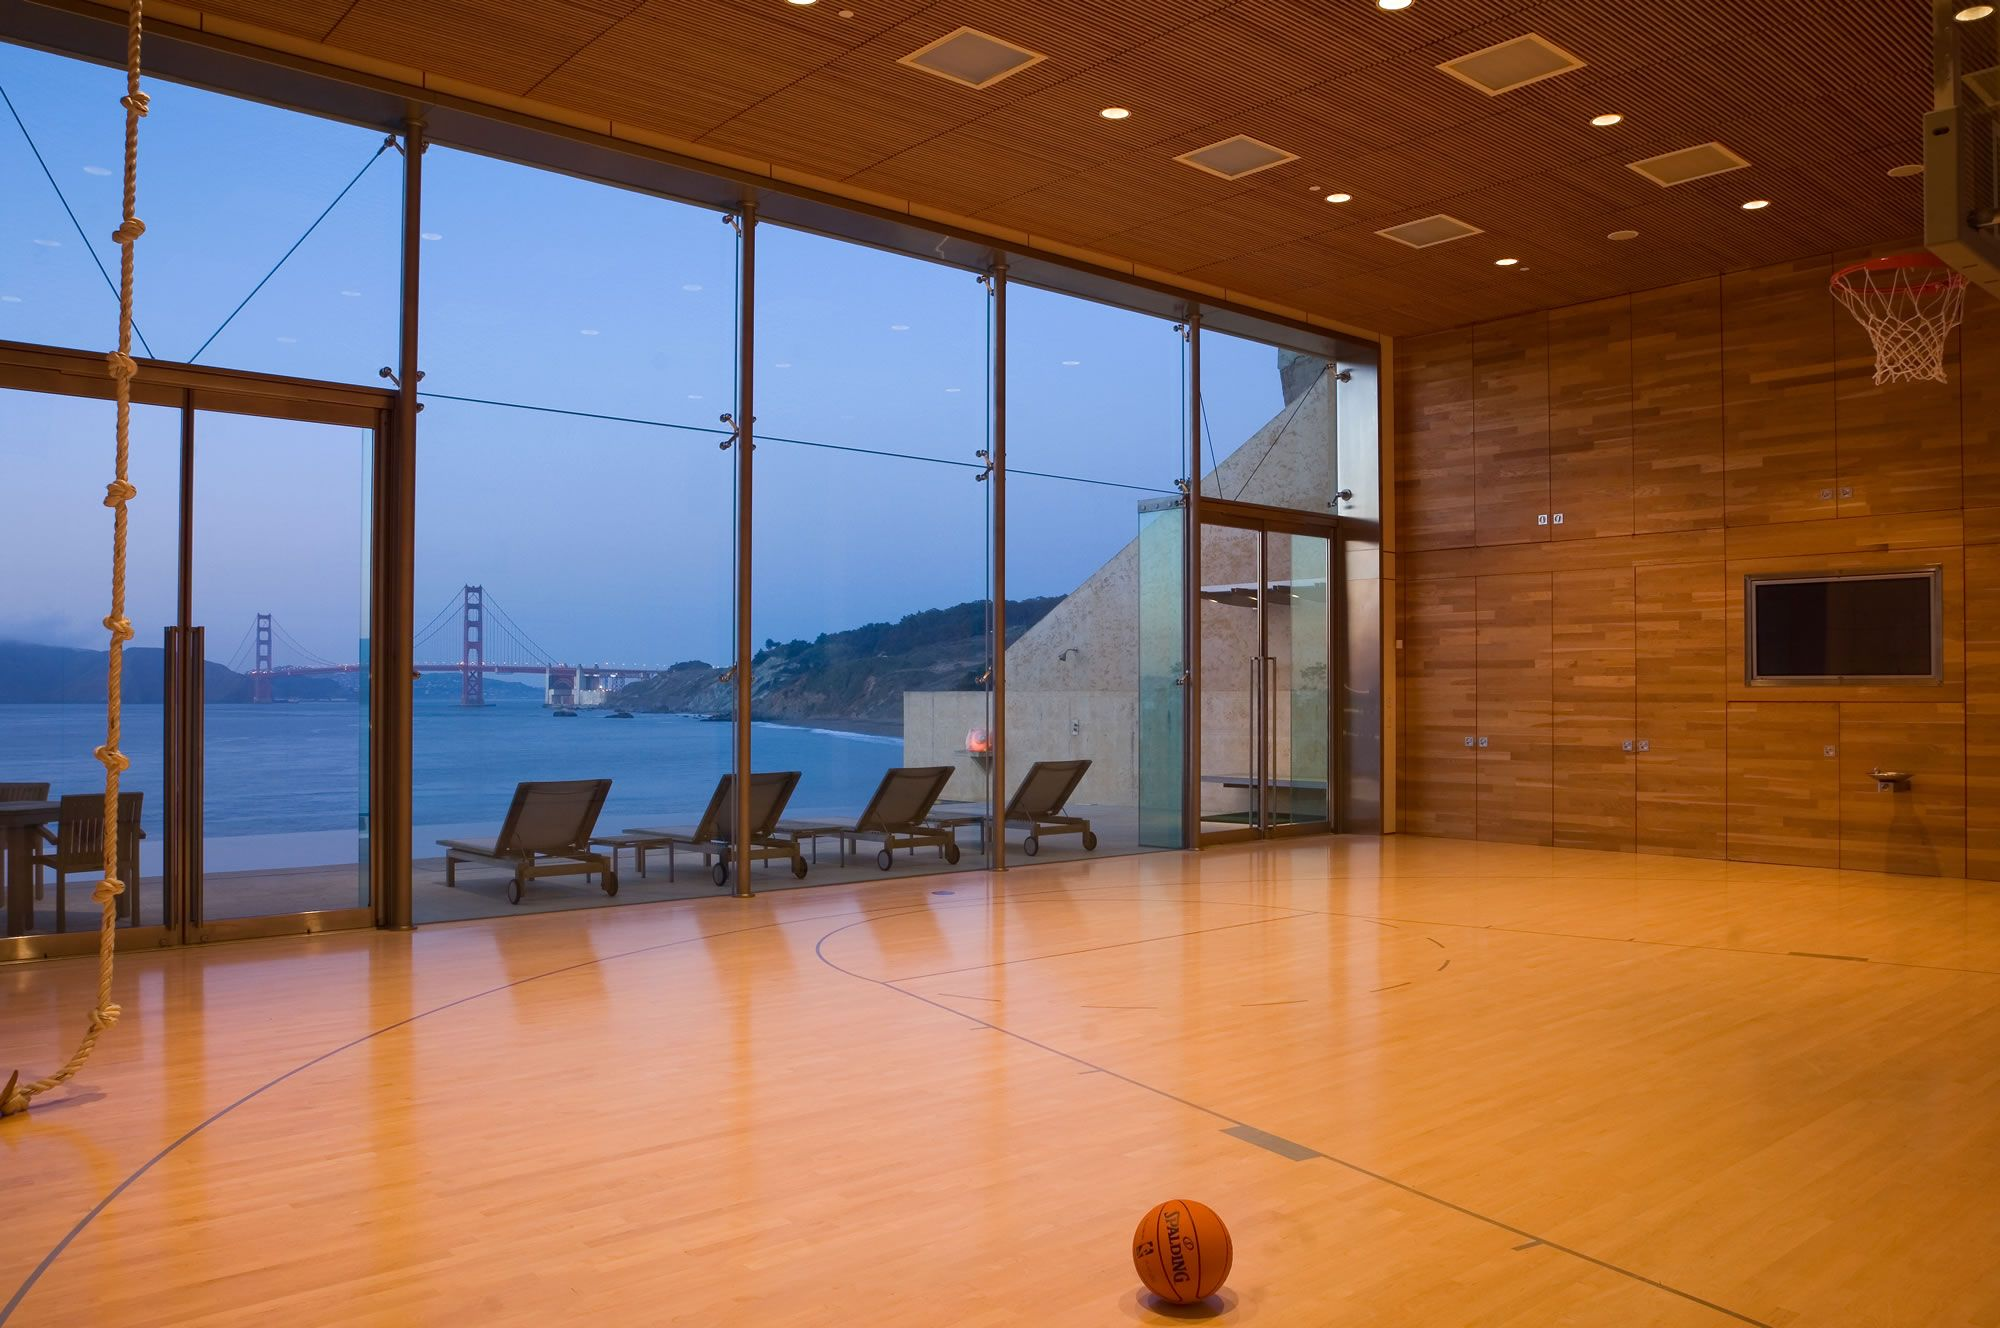 Sea Cliff Addition Gym | Indoor Basketball Court ...